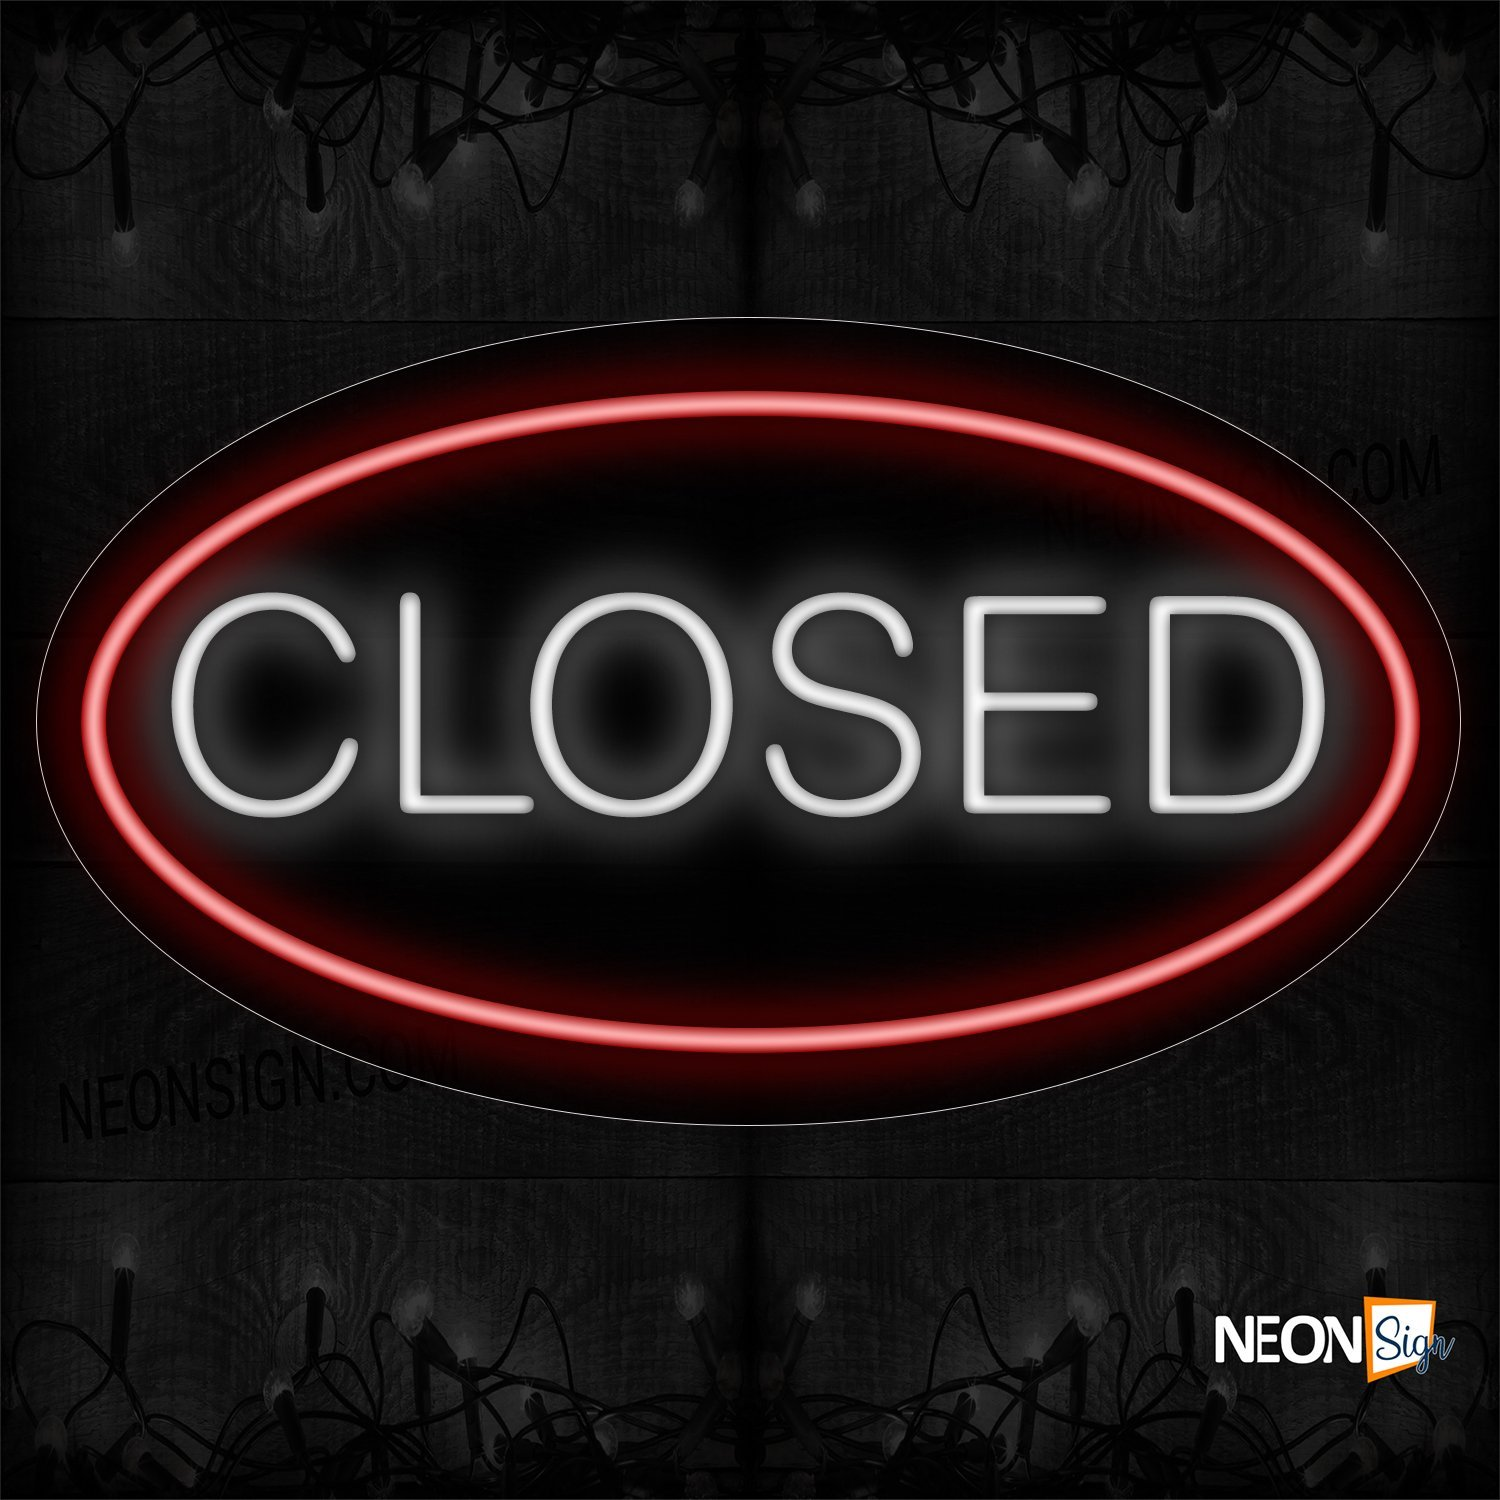 Image of Closed In White With Red Oval Border Neon Sign